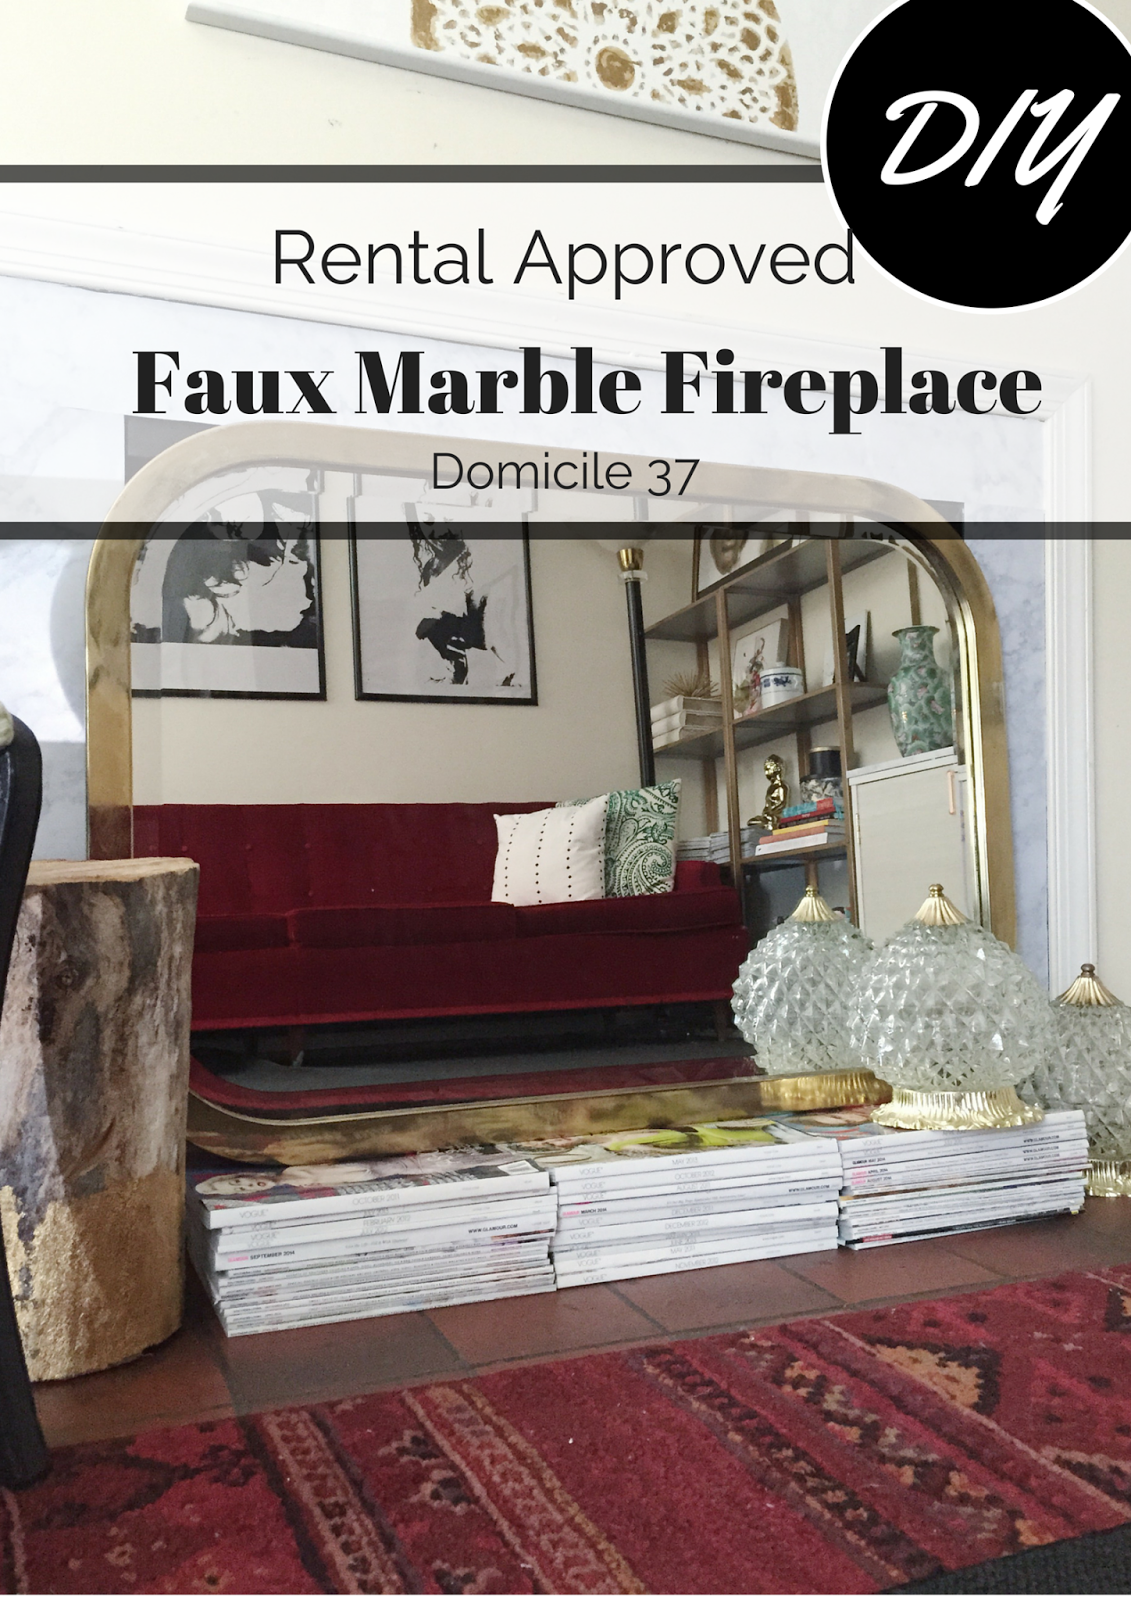 Faux marble fireplace marbles contact paper and diy ideas